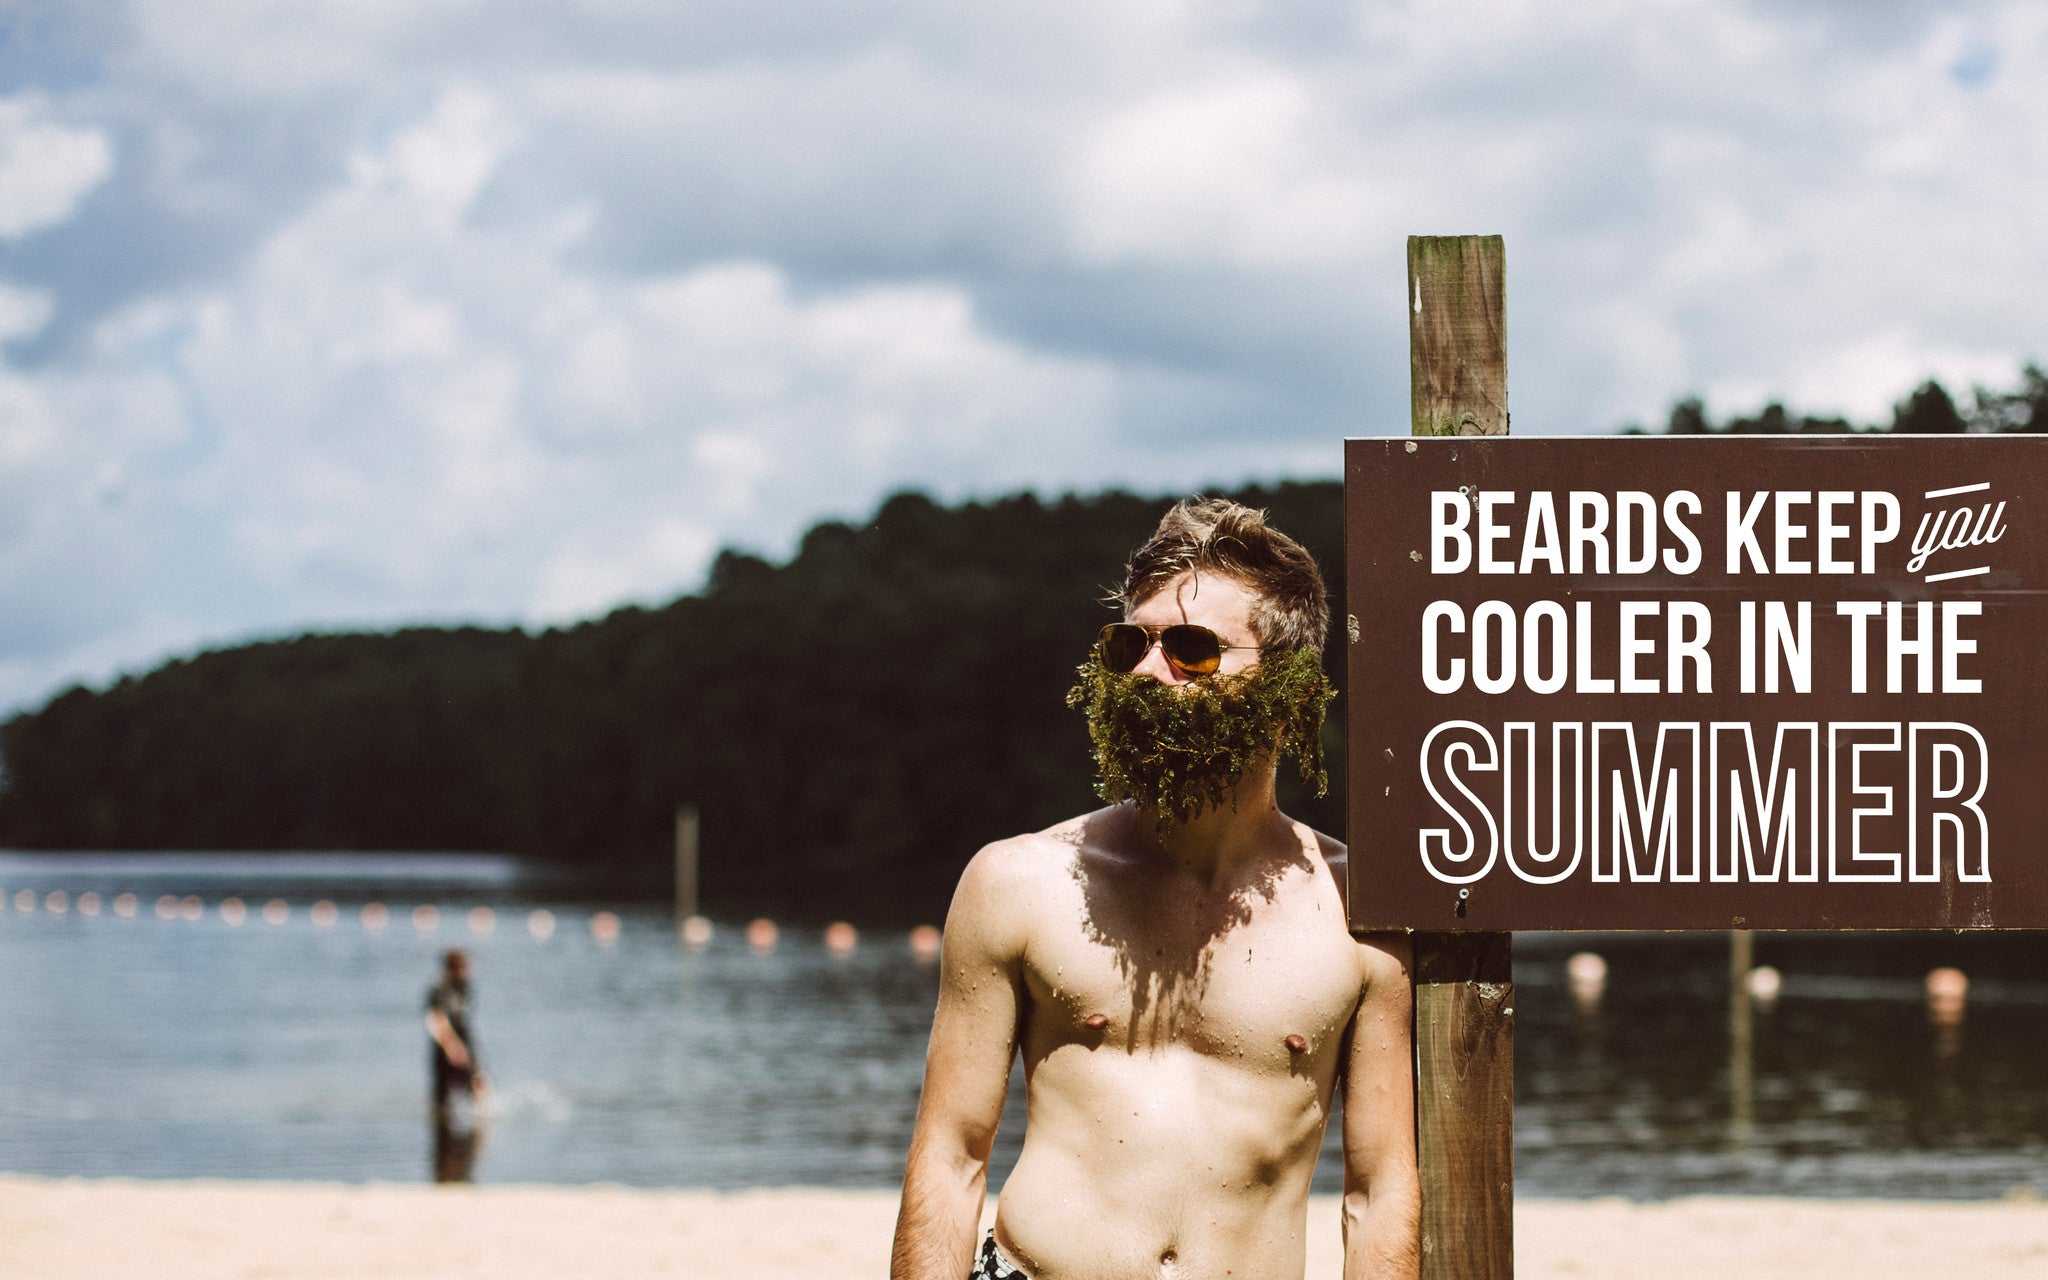 Beards keep you cooler in the summer